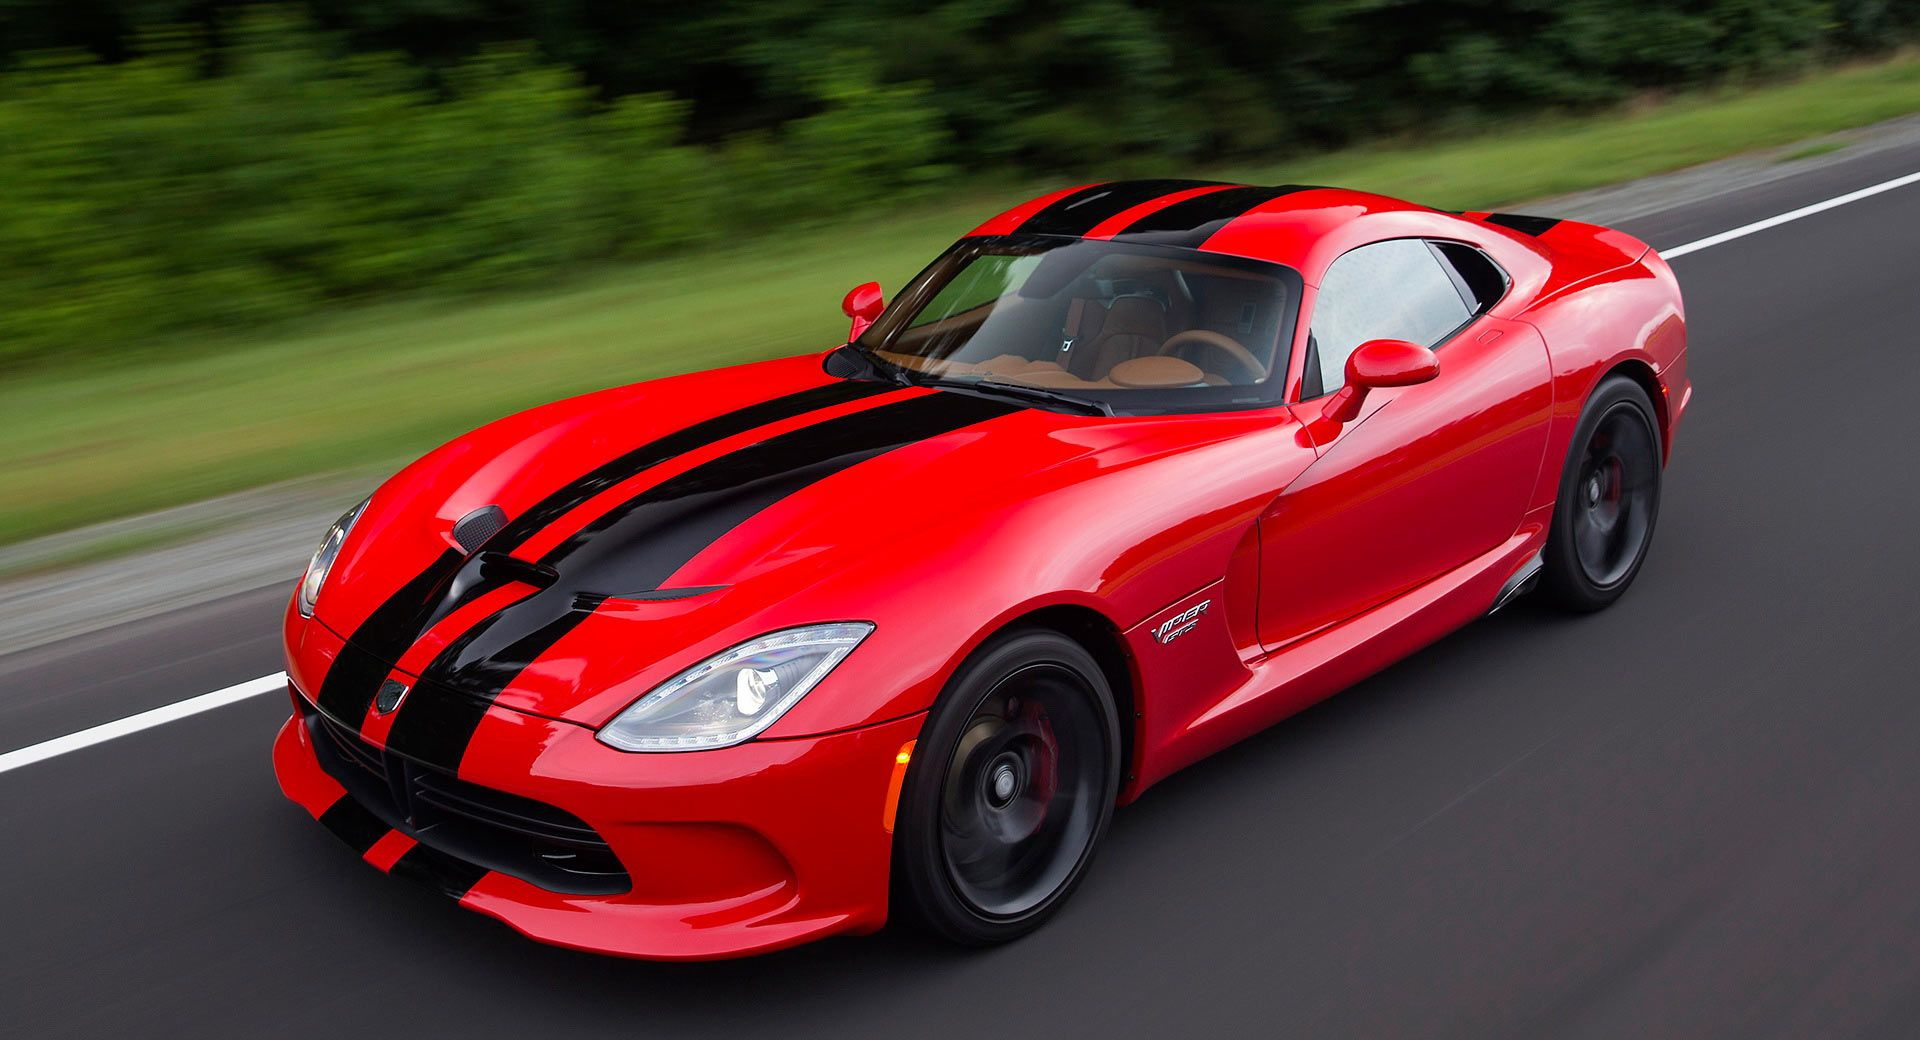 Five Brand New Dodge Vipers Were Sold Last Year In The U S And One In Canada In 2020 Dodge Viper New Dodge Viper Super Cars